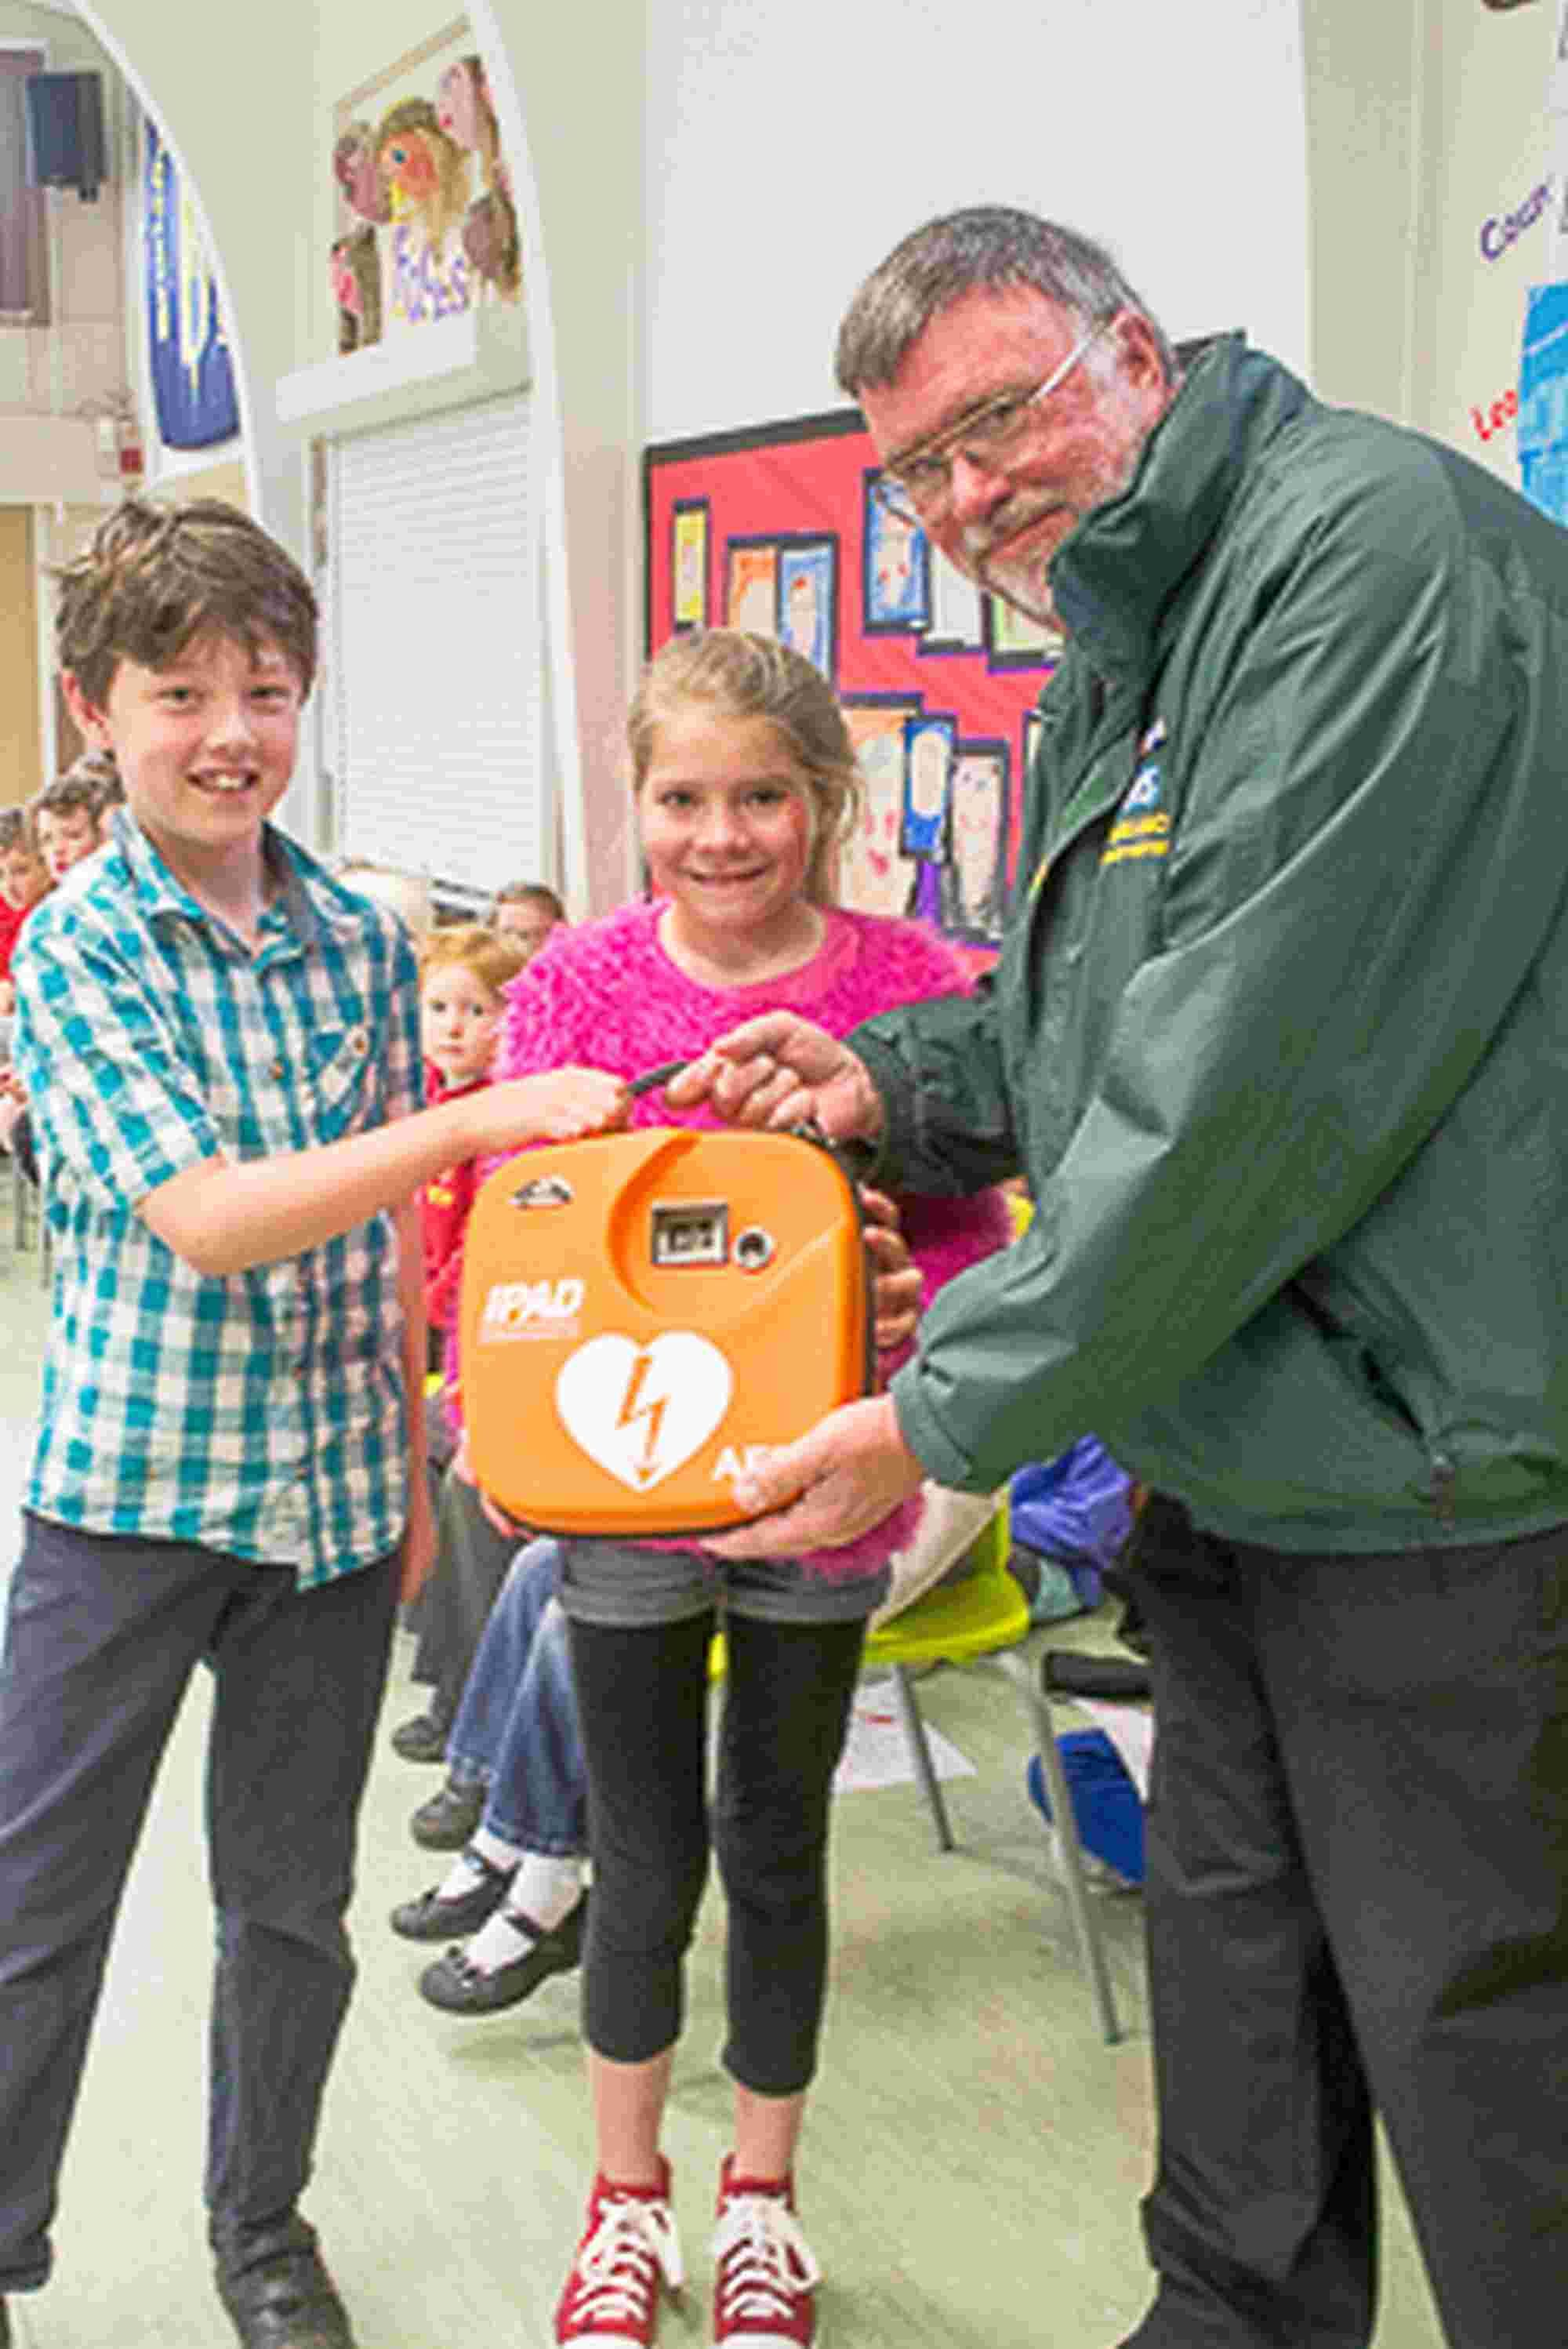 Mike Jukes from the Bransgore Community First Responders hands over the defibrillator to Bransgore Primary School pupils Wilf Jenkinson and Alice Waite. Picture: Mopho Photography